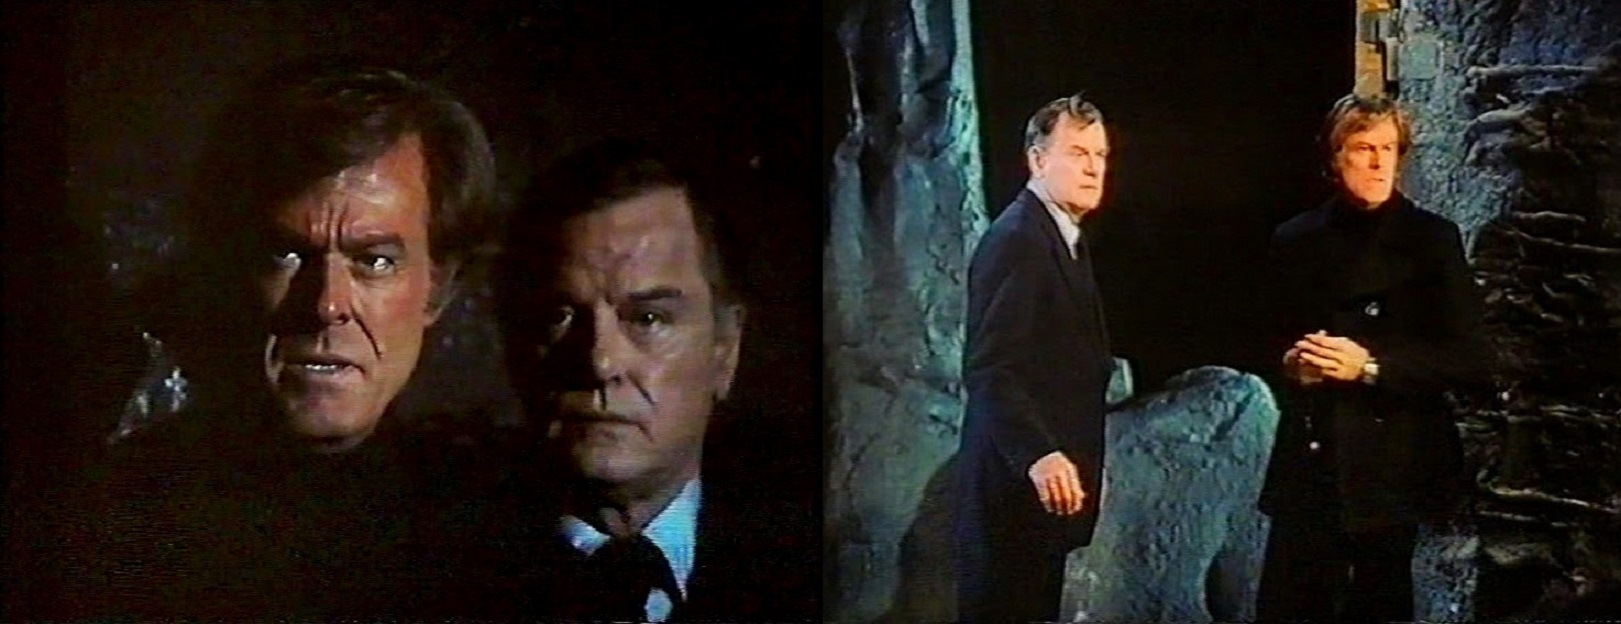 Robert Culp, Gig Young in Spectre (1977)